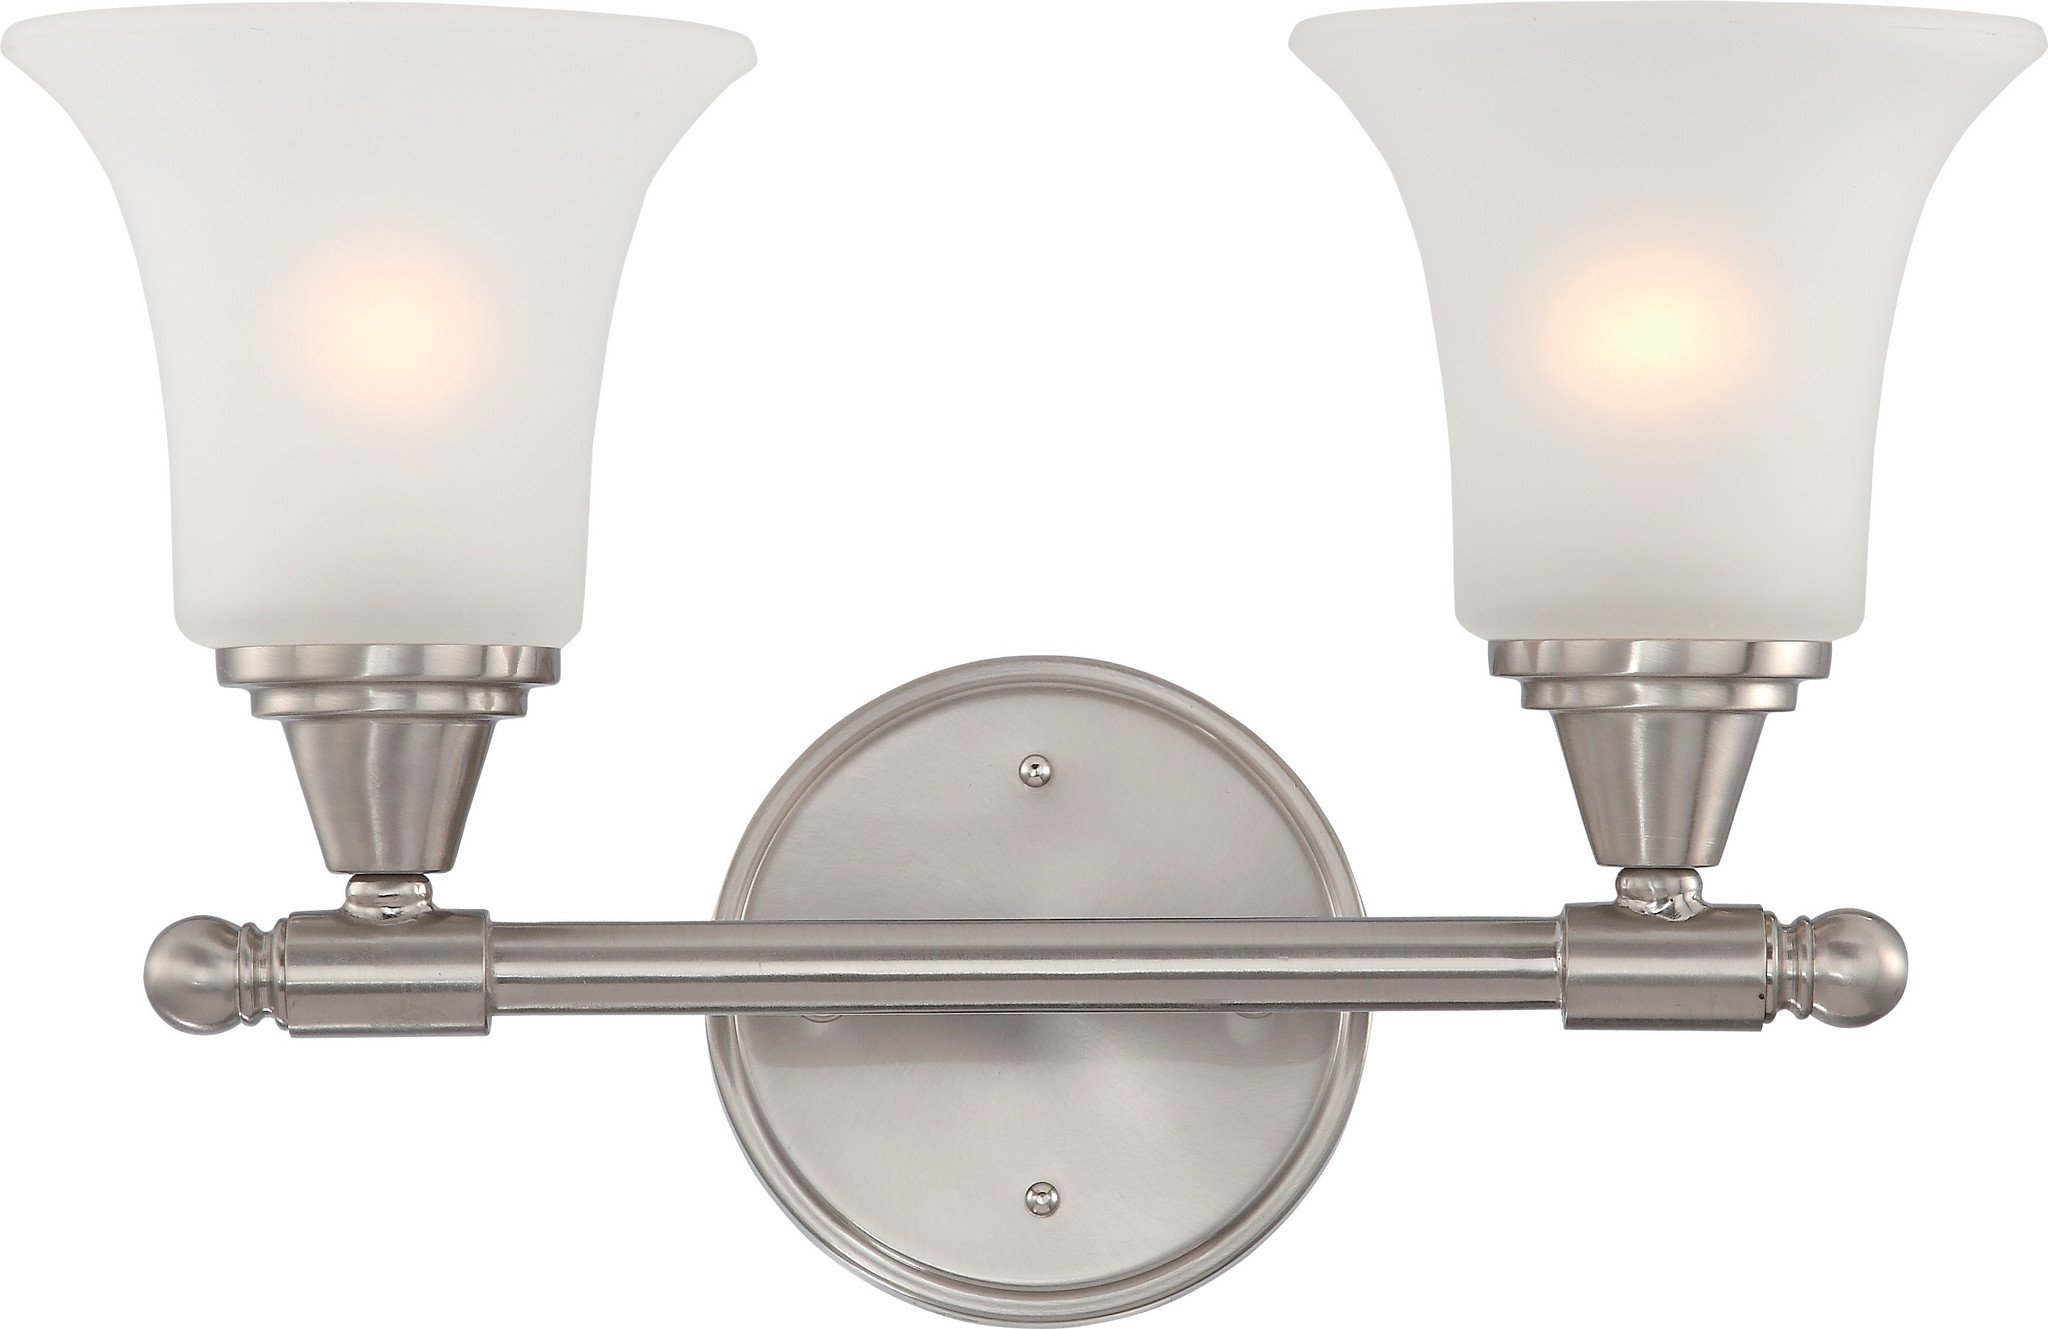 Vanity Light Fixture in Brushed Nickel with Frosted Glass